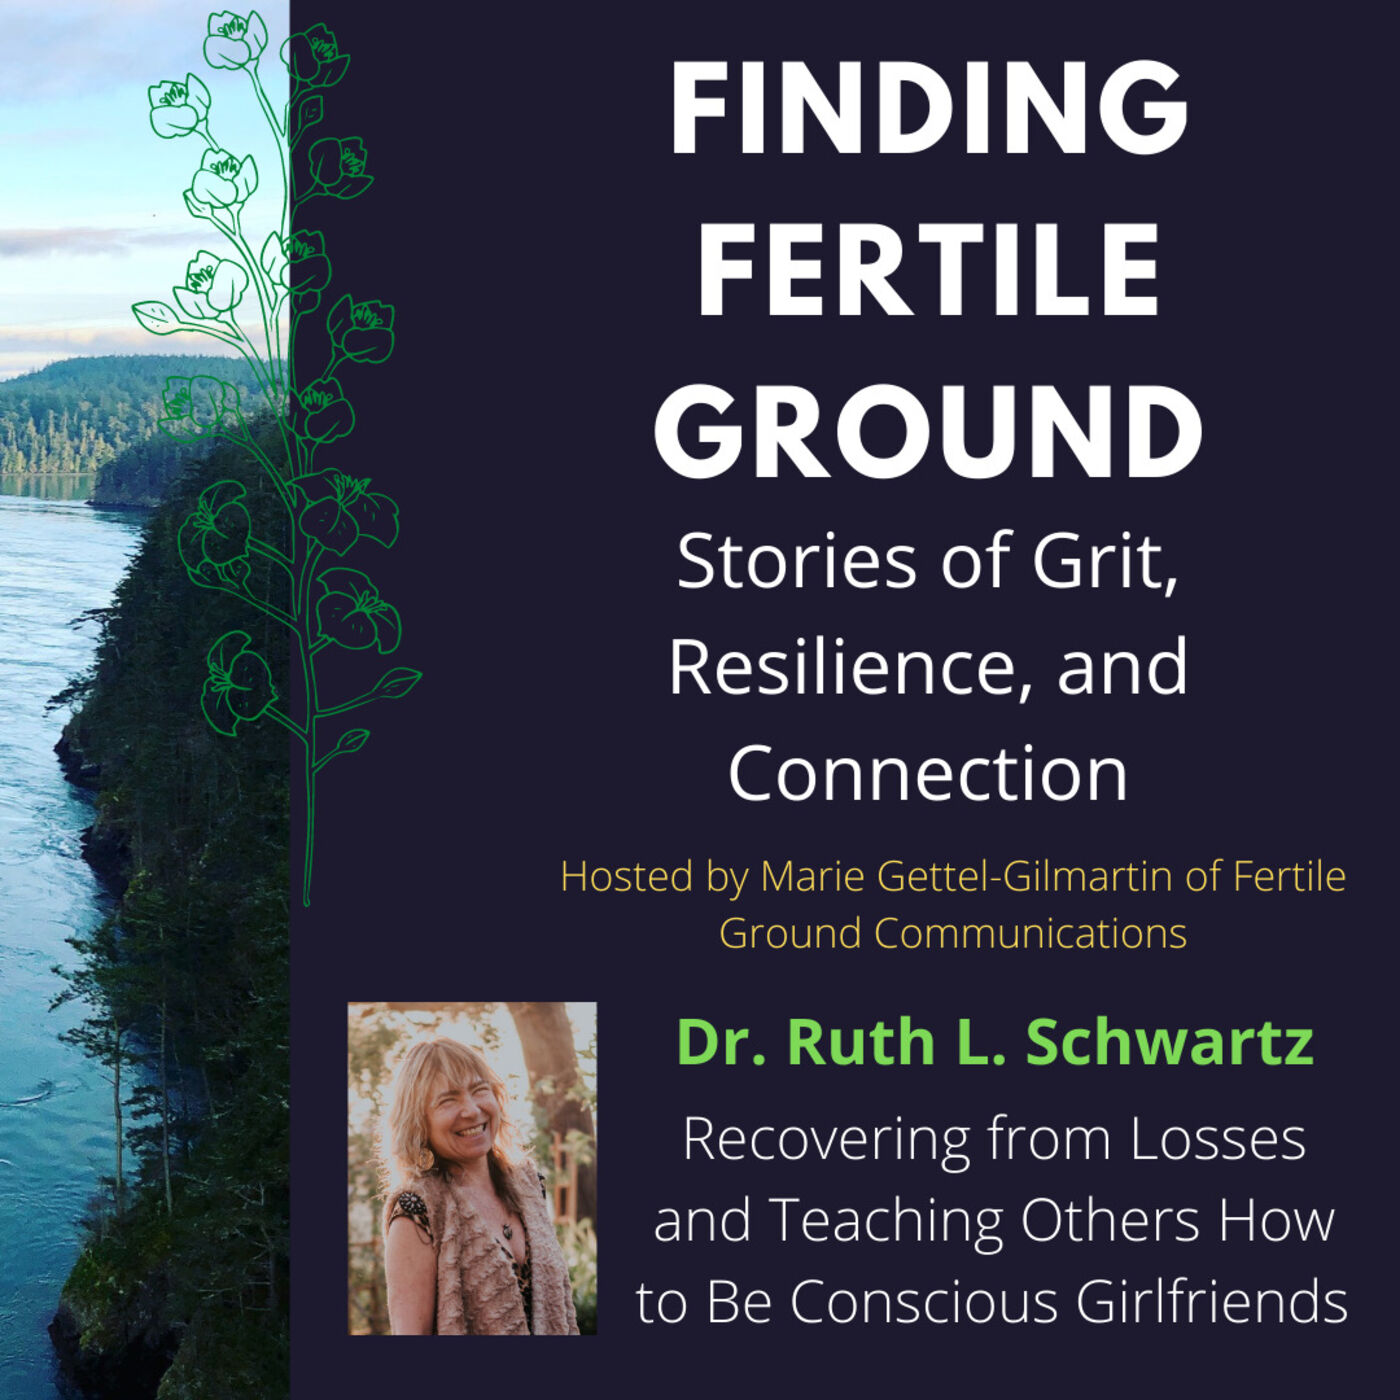 Ruth L. Schwartz: Recovering from Losses and Teaching Others How to Be Conscious Girlfriends